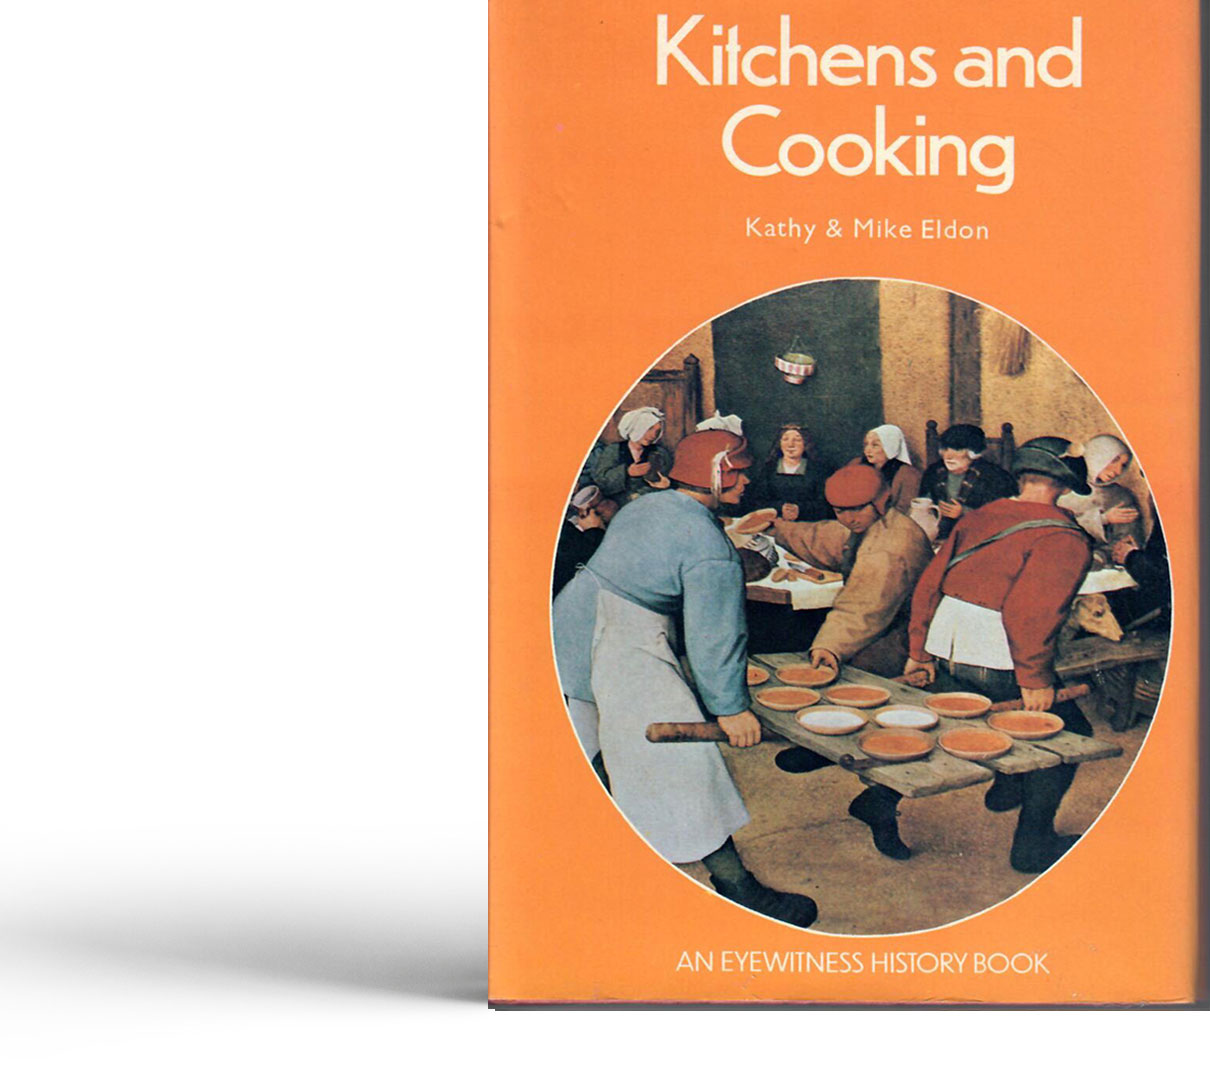 Kitchens and Cooking